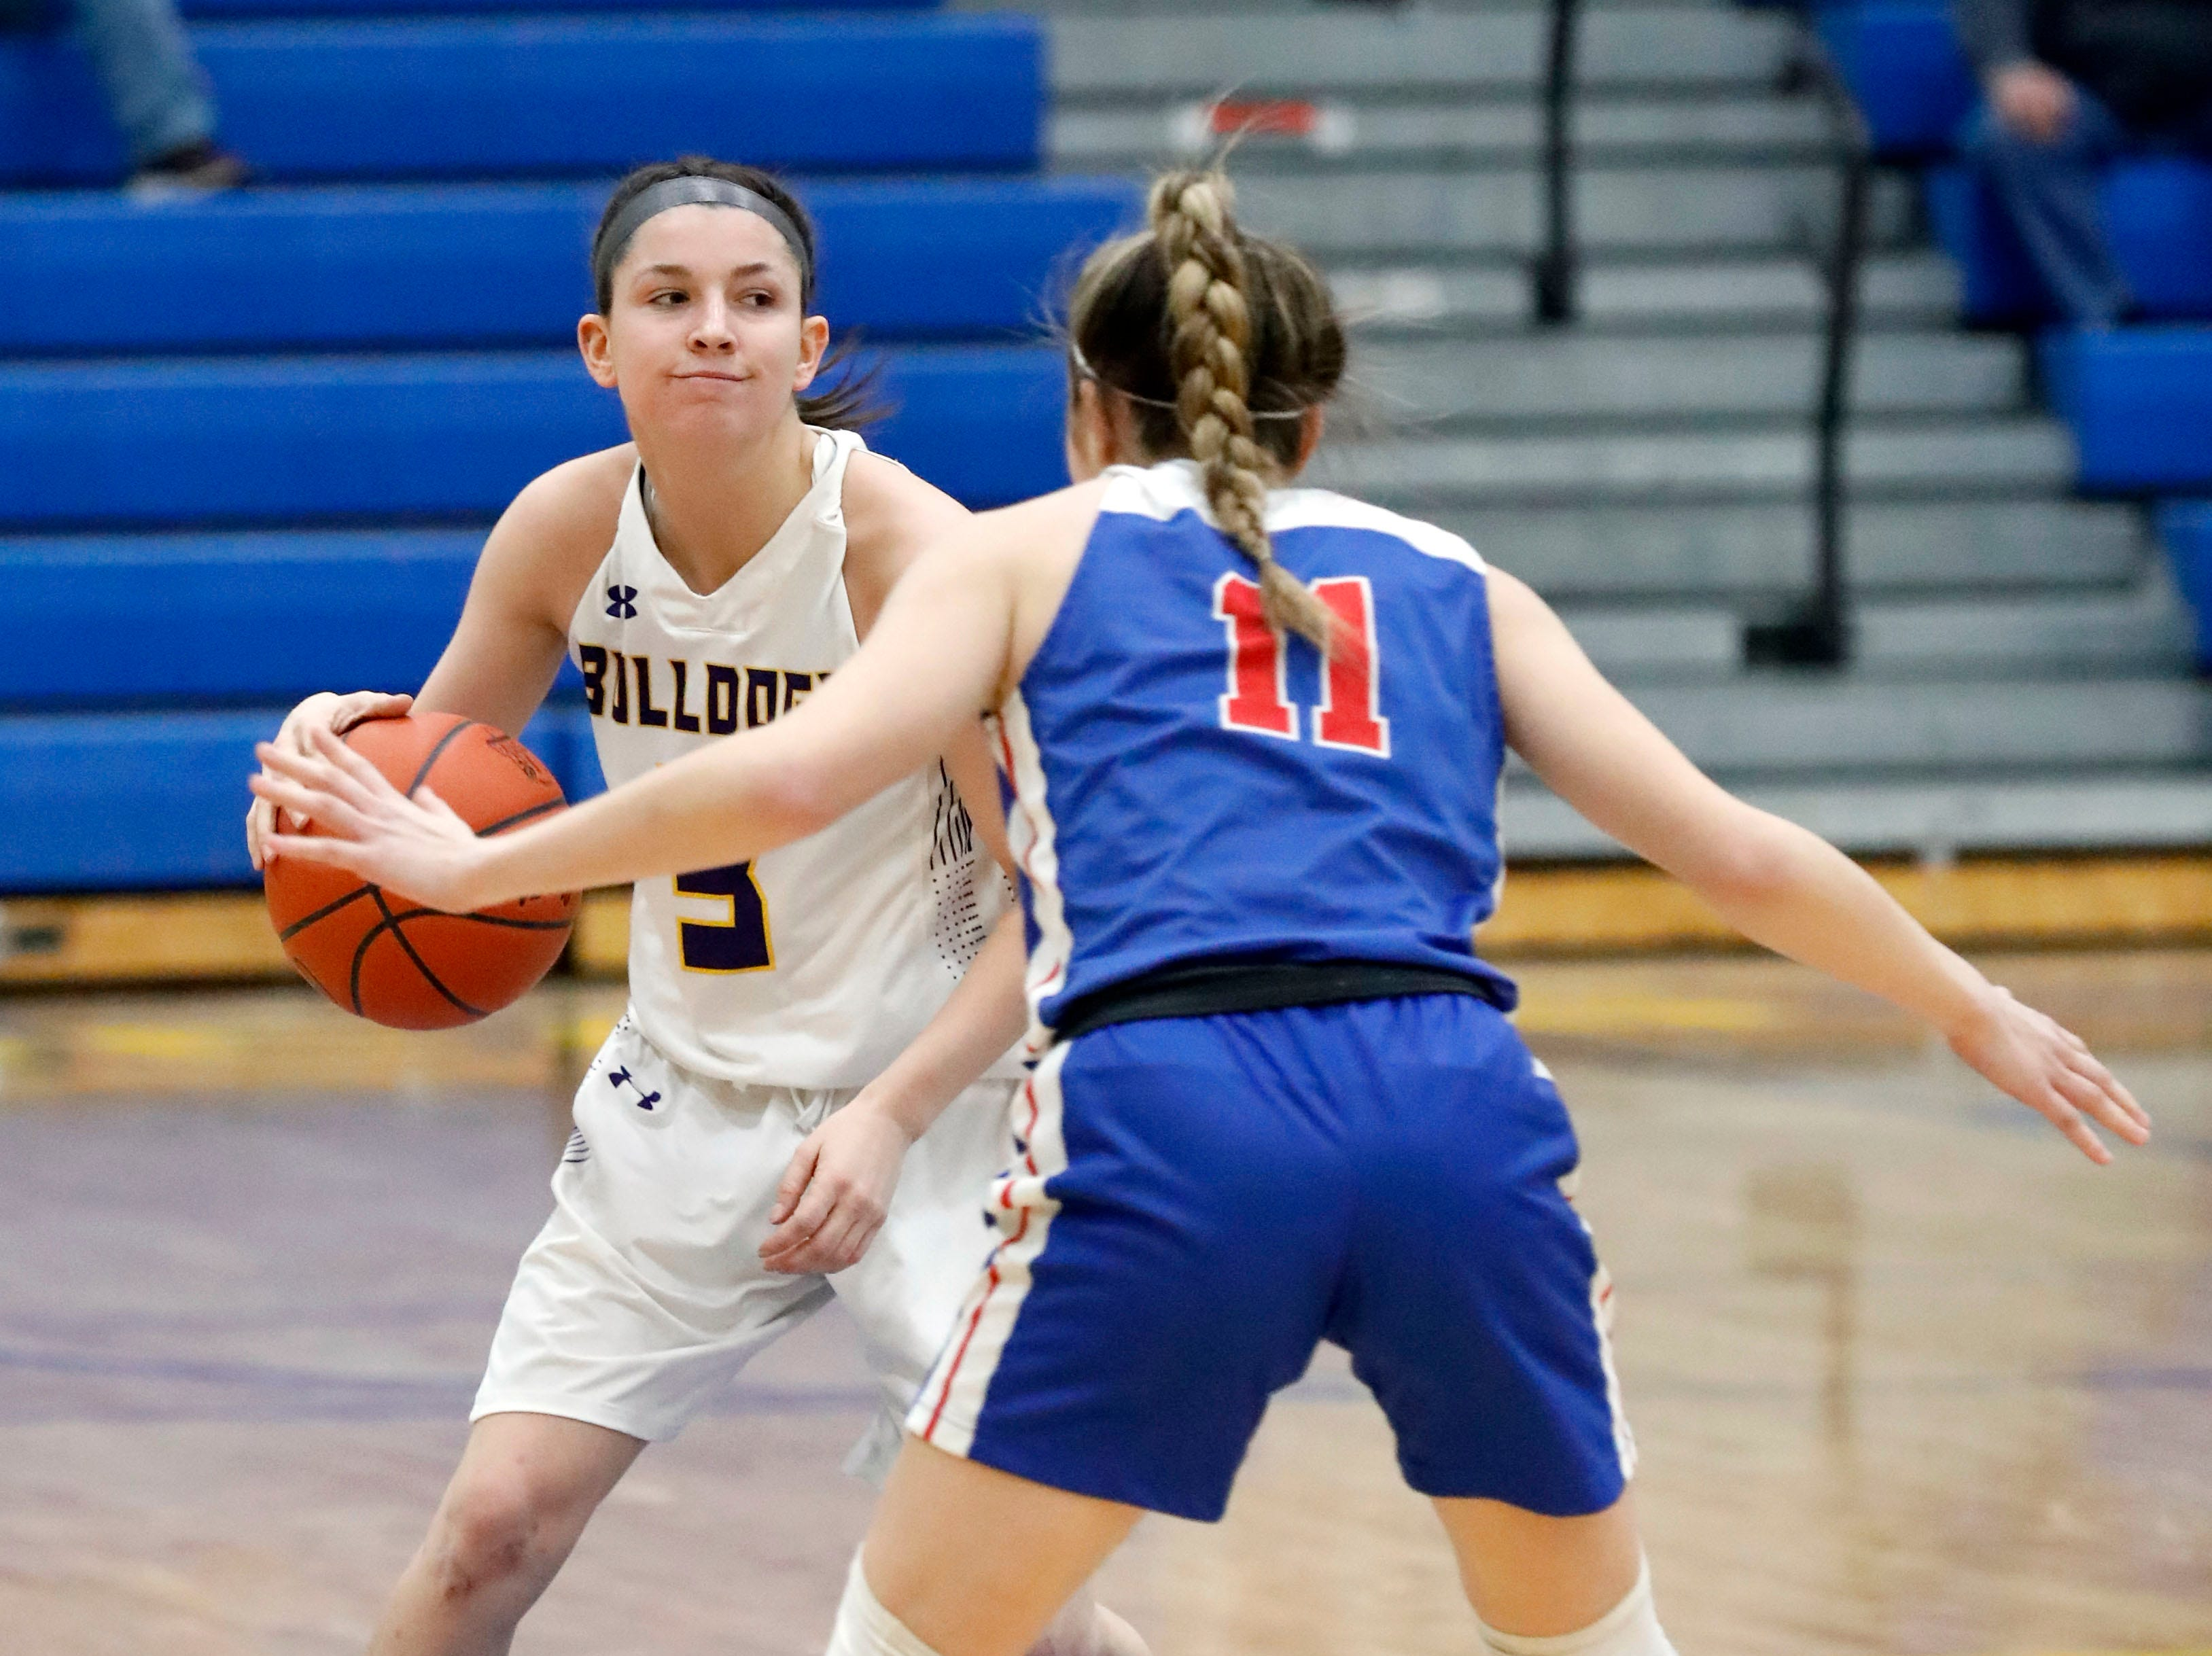 Bloom-Carroll lost to Carroll 46-30 Tuesday night, March 5, 2019, at Springfield High School in Springfield.